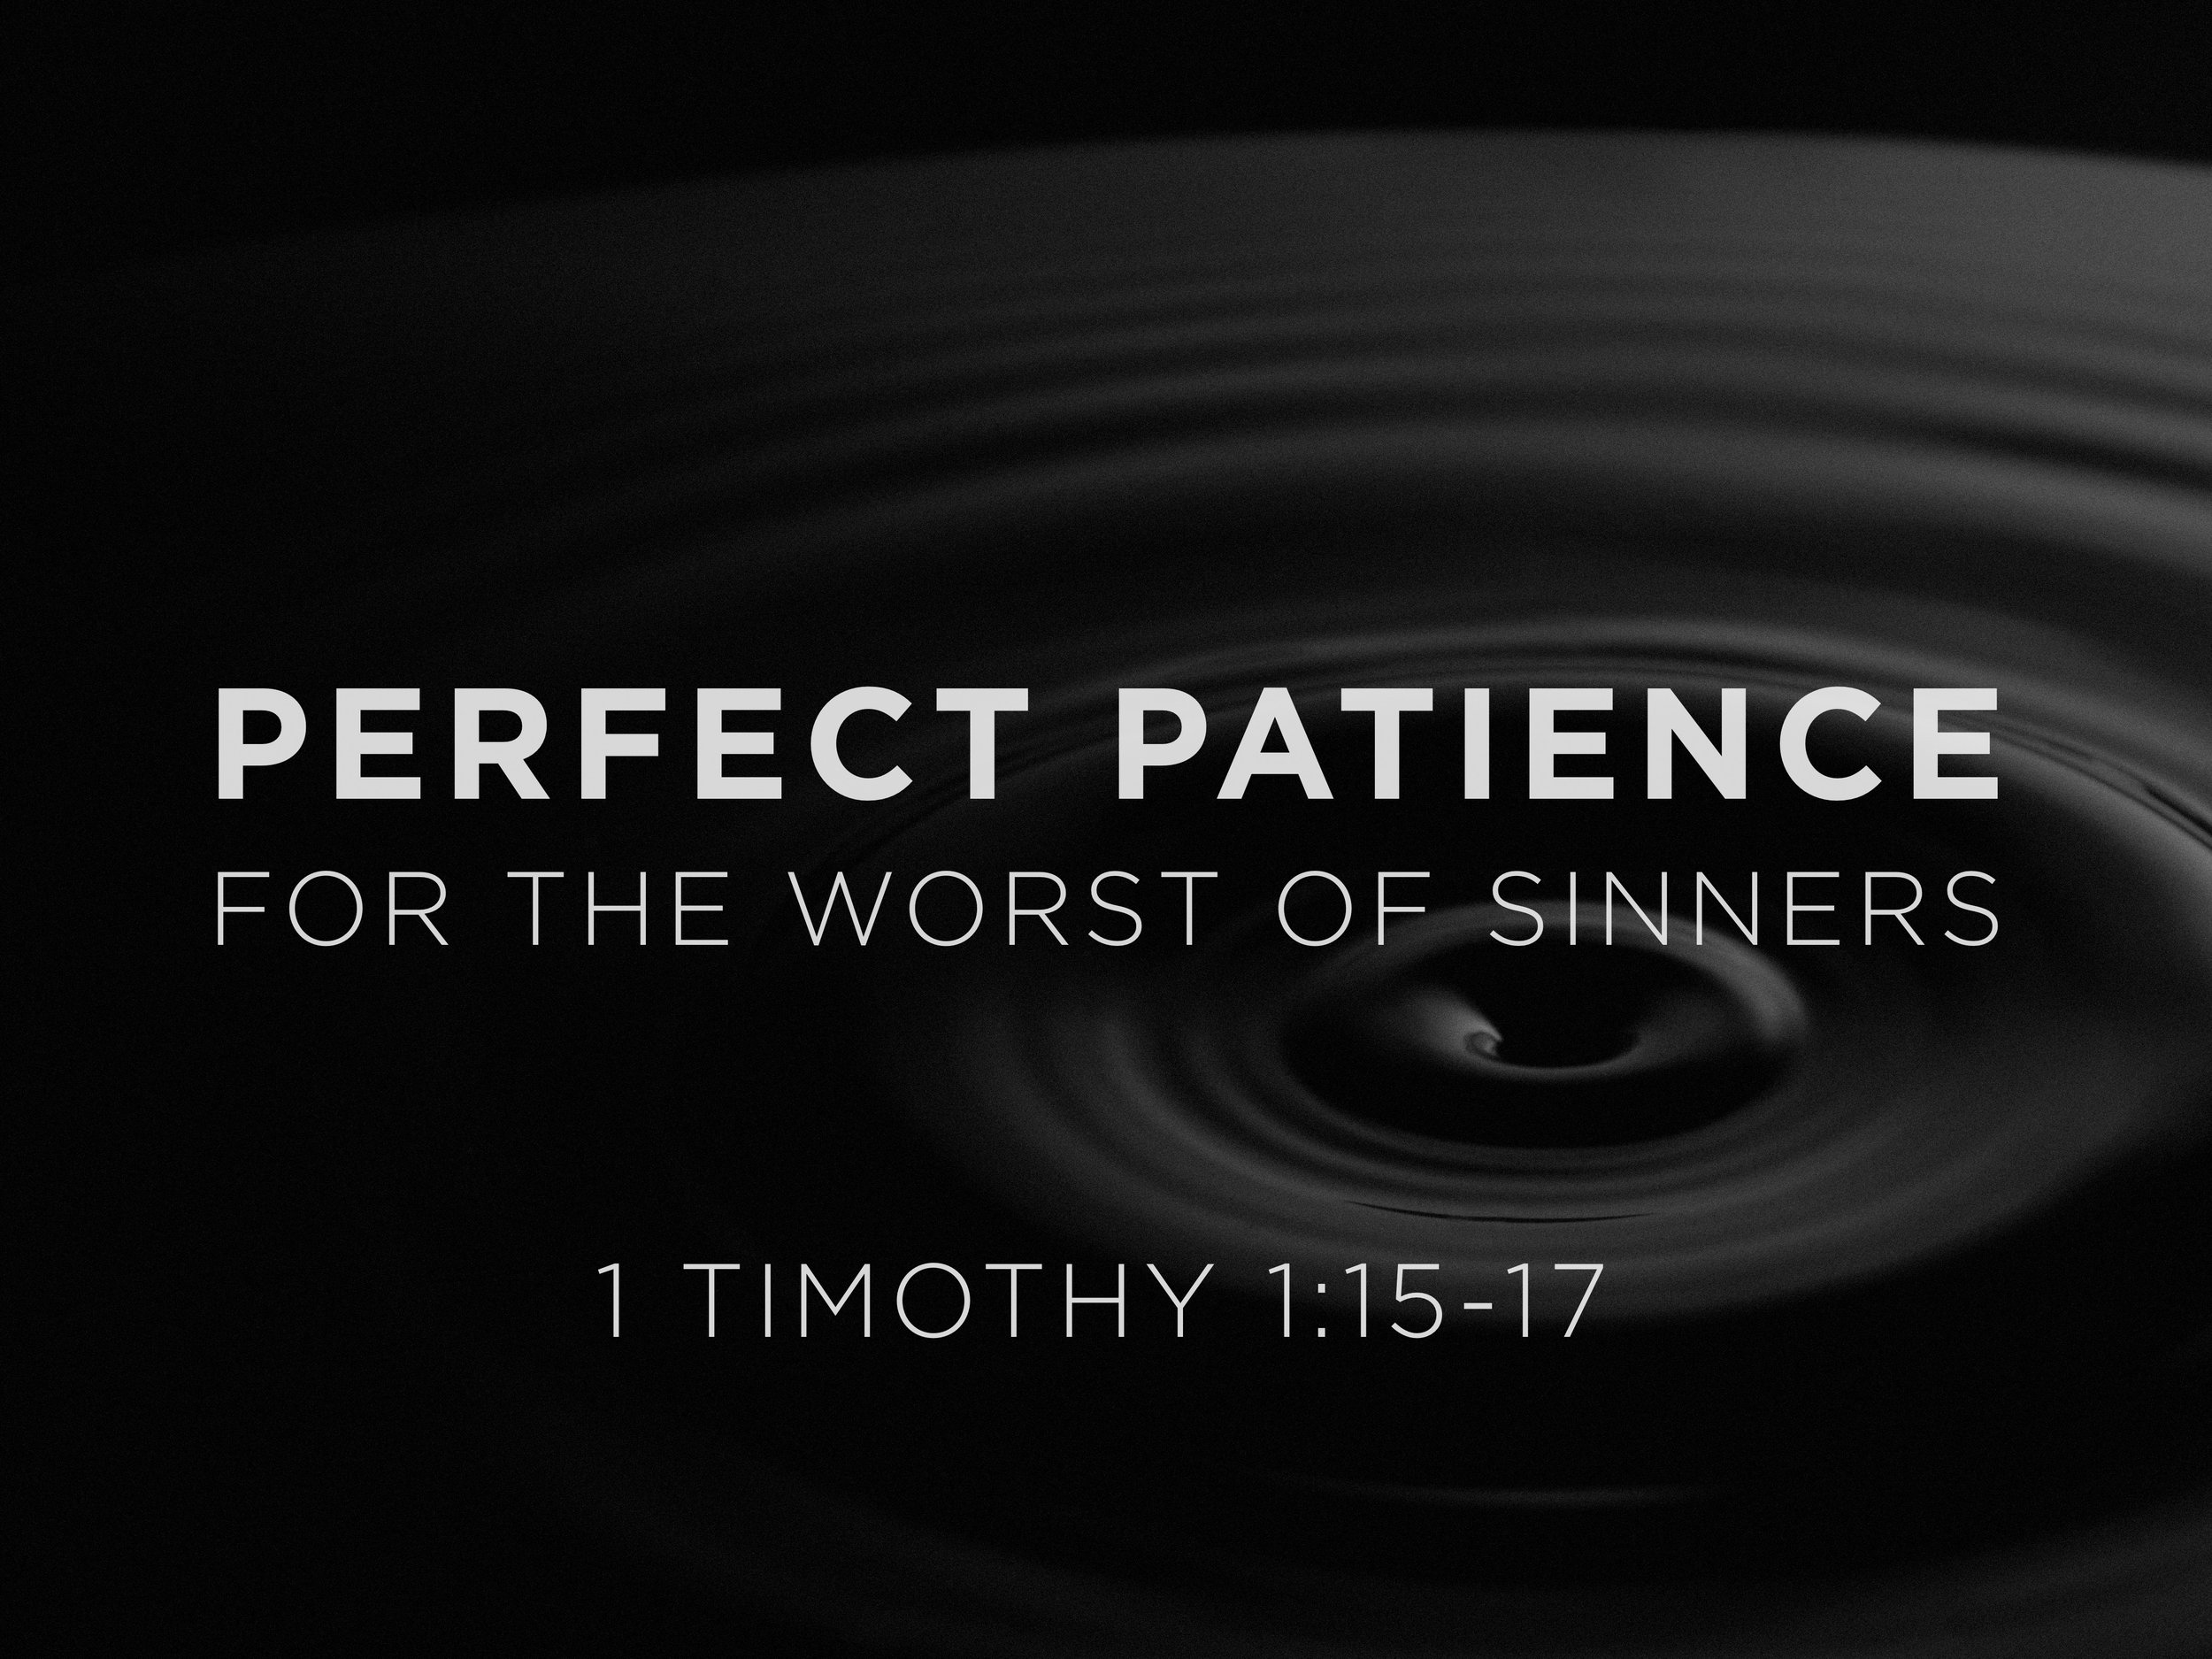 Perfect Patience for the worst of sinners sermon slide.jpg